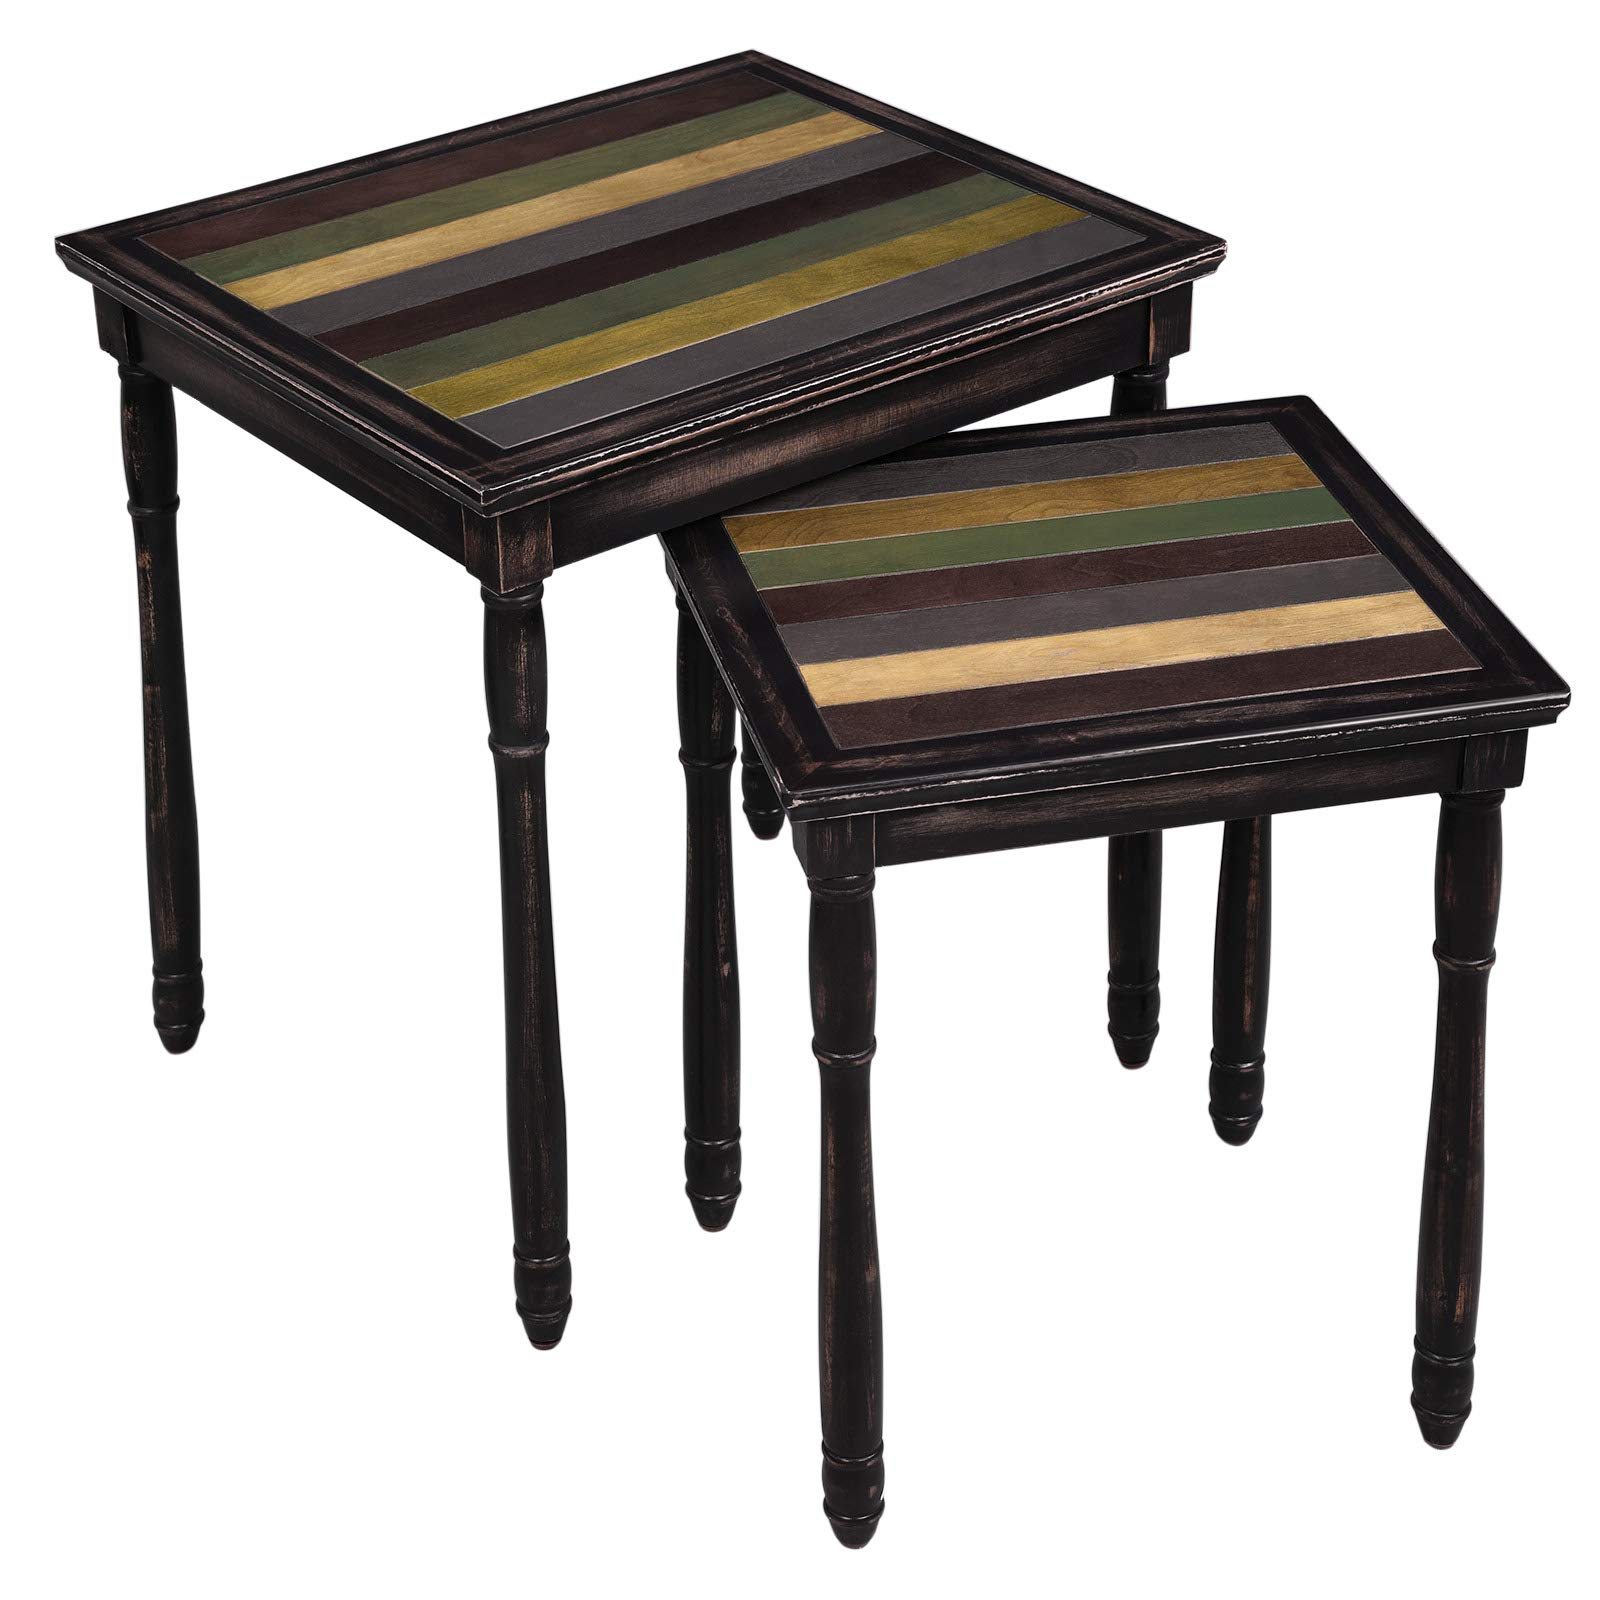 VASAGLE Nesting End Tables with Colorful Storage Tabletop, Pair of 2 Coffee Tables with Solid Wood Legs, Assembly Without Tools, Side Table for Living Room, Country Brown ULNT01GL by VASAGLE